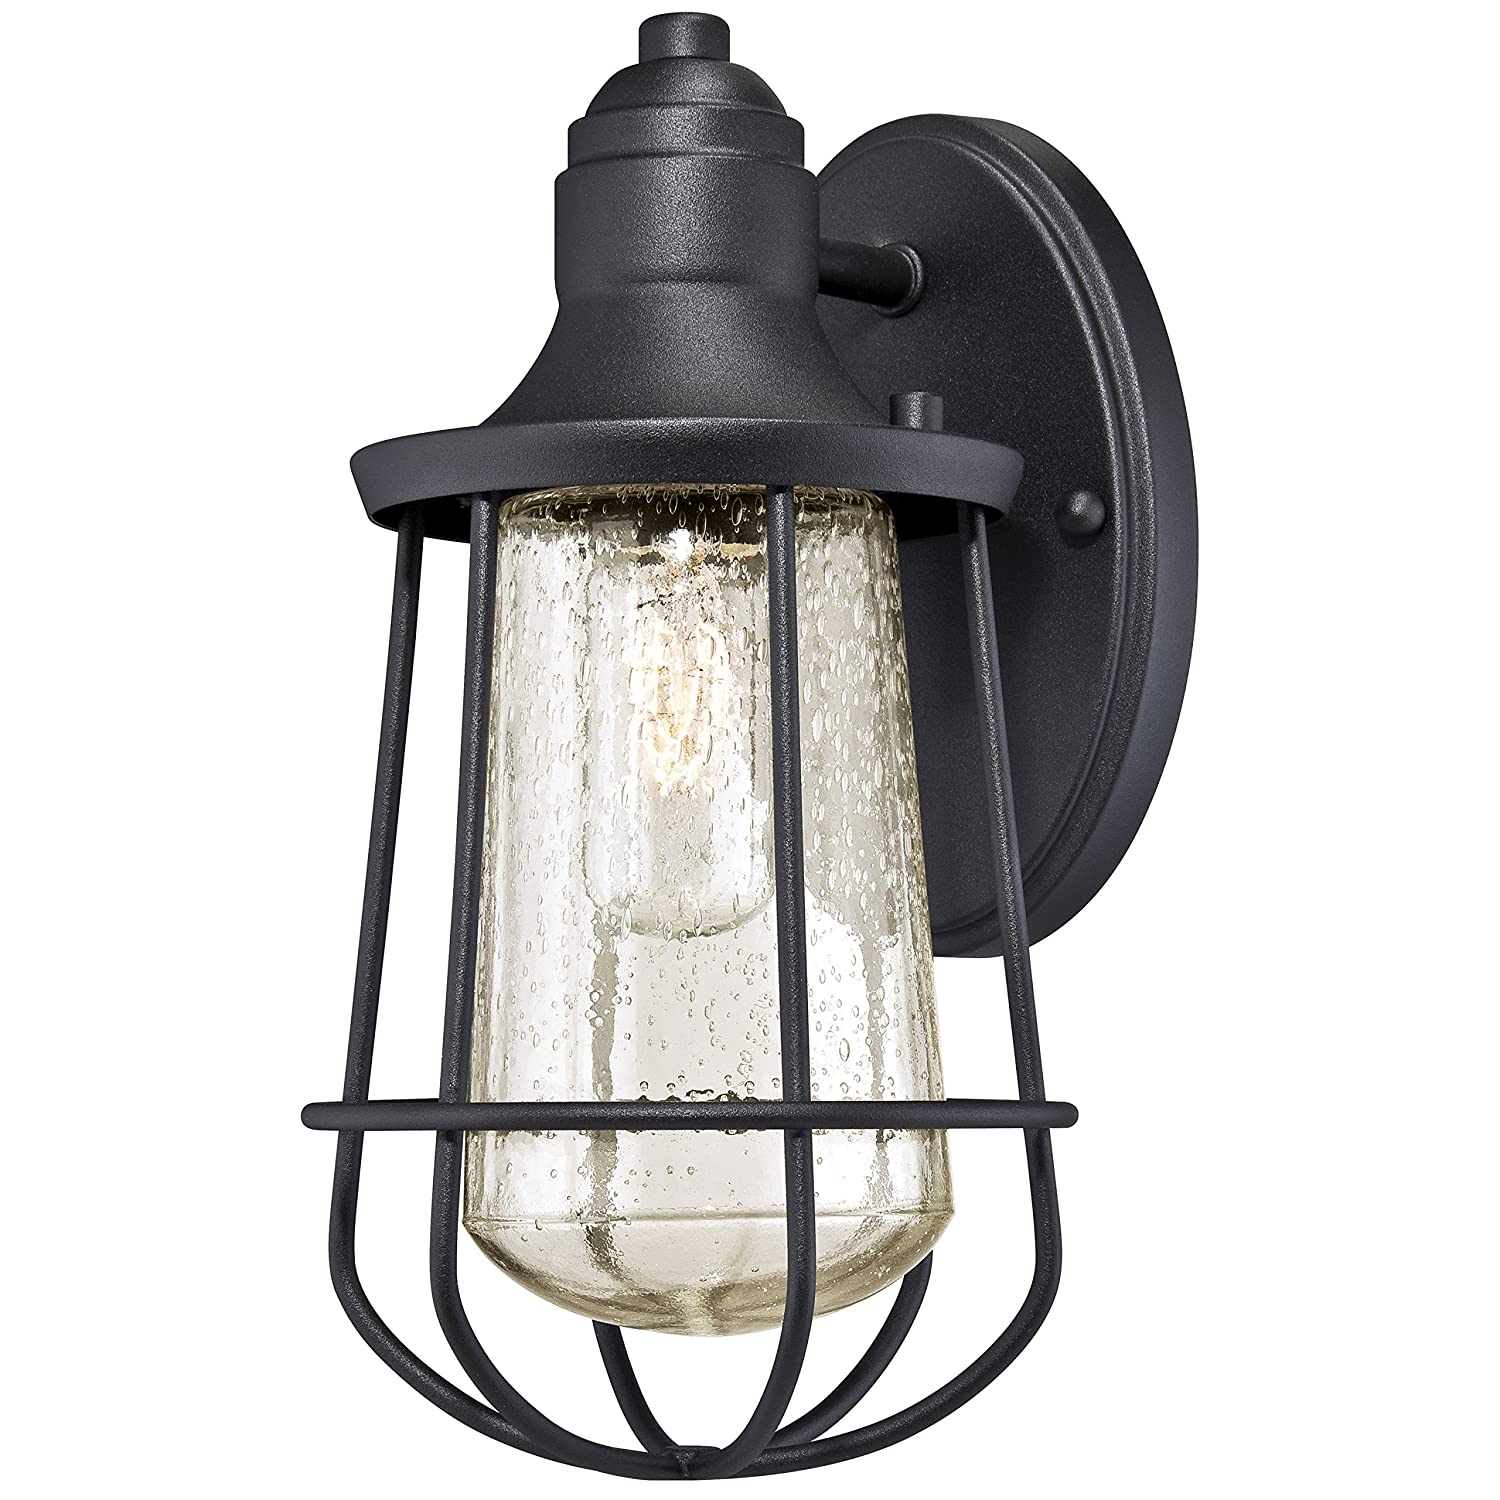 Westinghouse 6202900 elias 1 light industrial outdoor wall lantern westinghouse 6202900 elias 1 light industrial outdoor wall lantern textured black amazon aloadofball Image collections